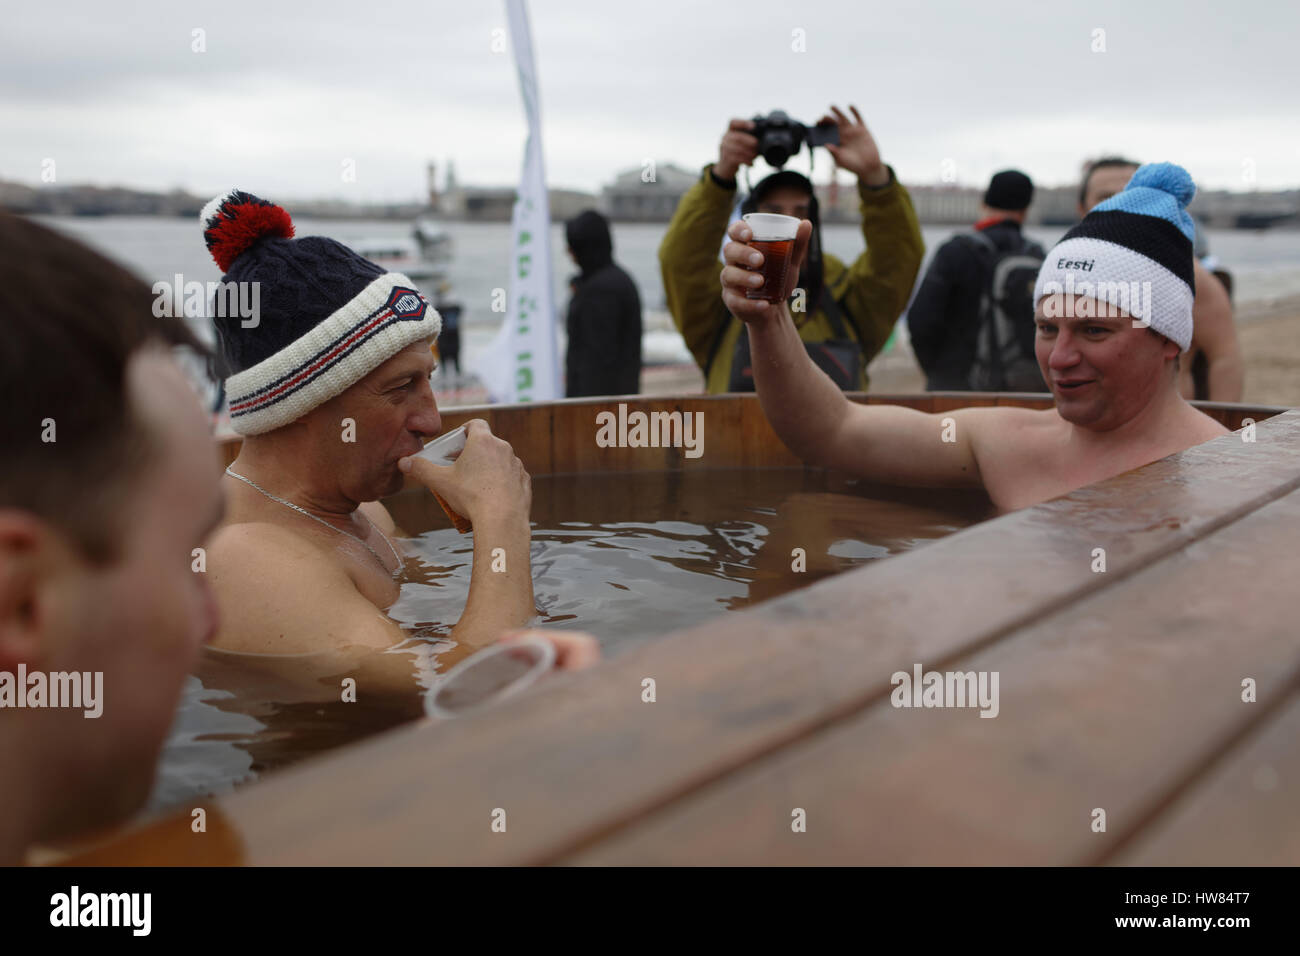 St. Petersburg, Russia, 18th March, 2017. Man drinking hot tea in the tank with warm water after a swim in river Stock Photo